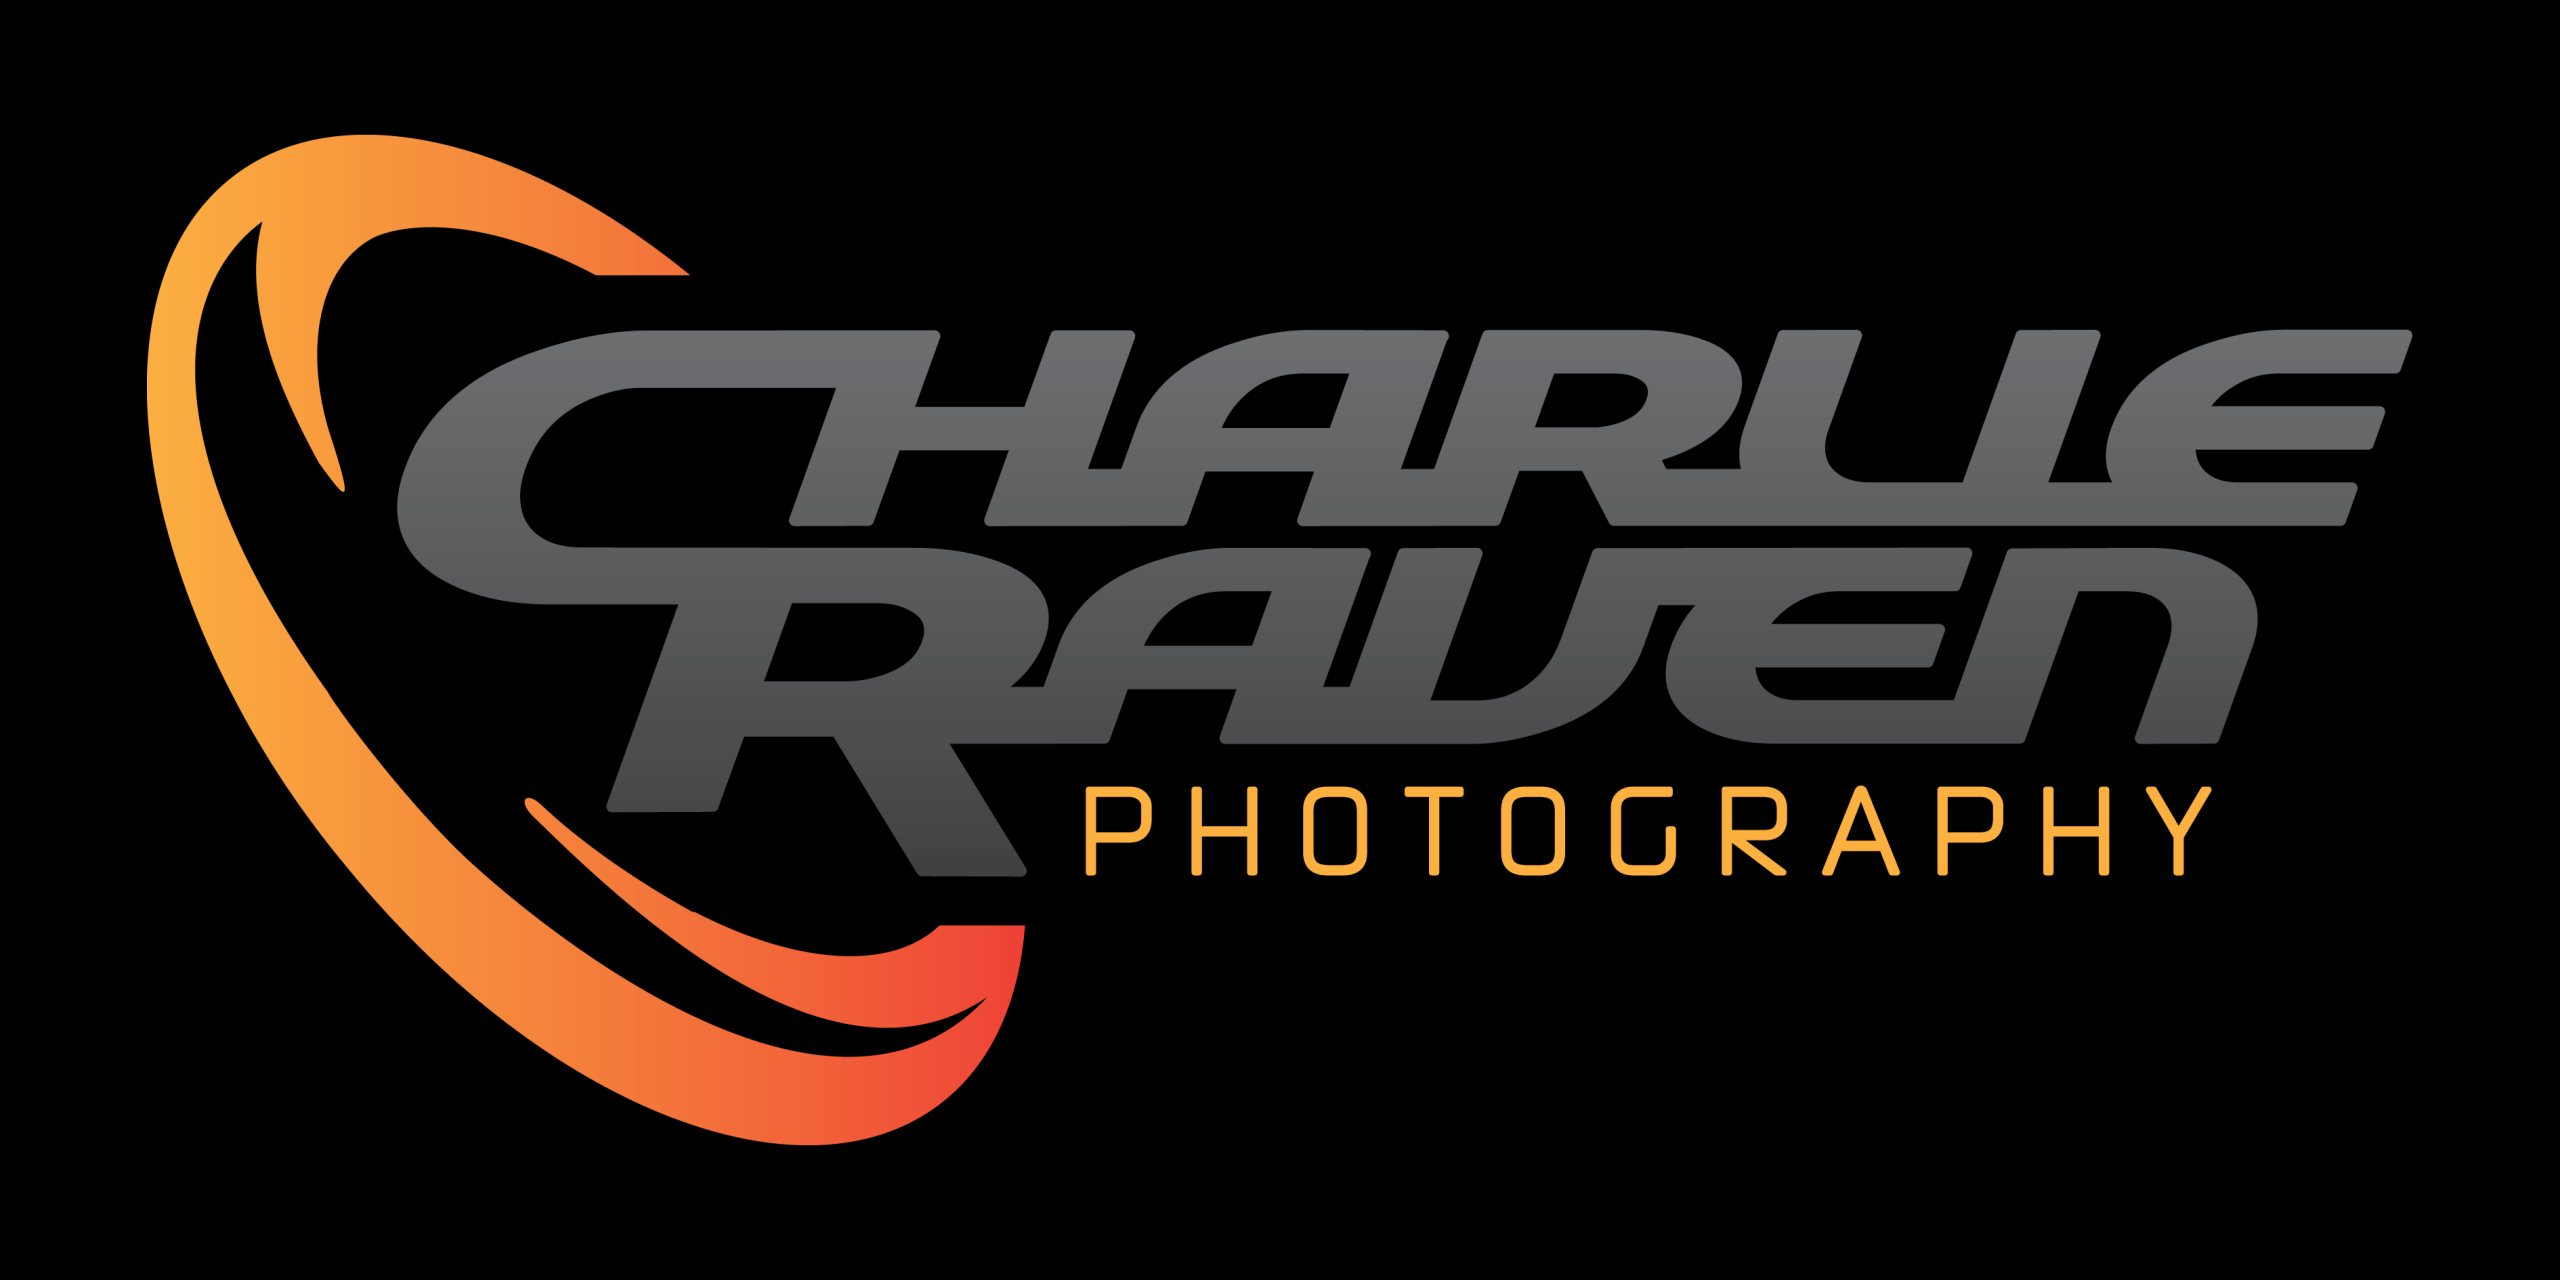 Charlie Raven Photography Logo Resized Web